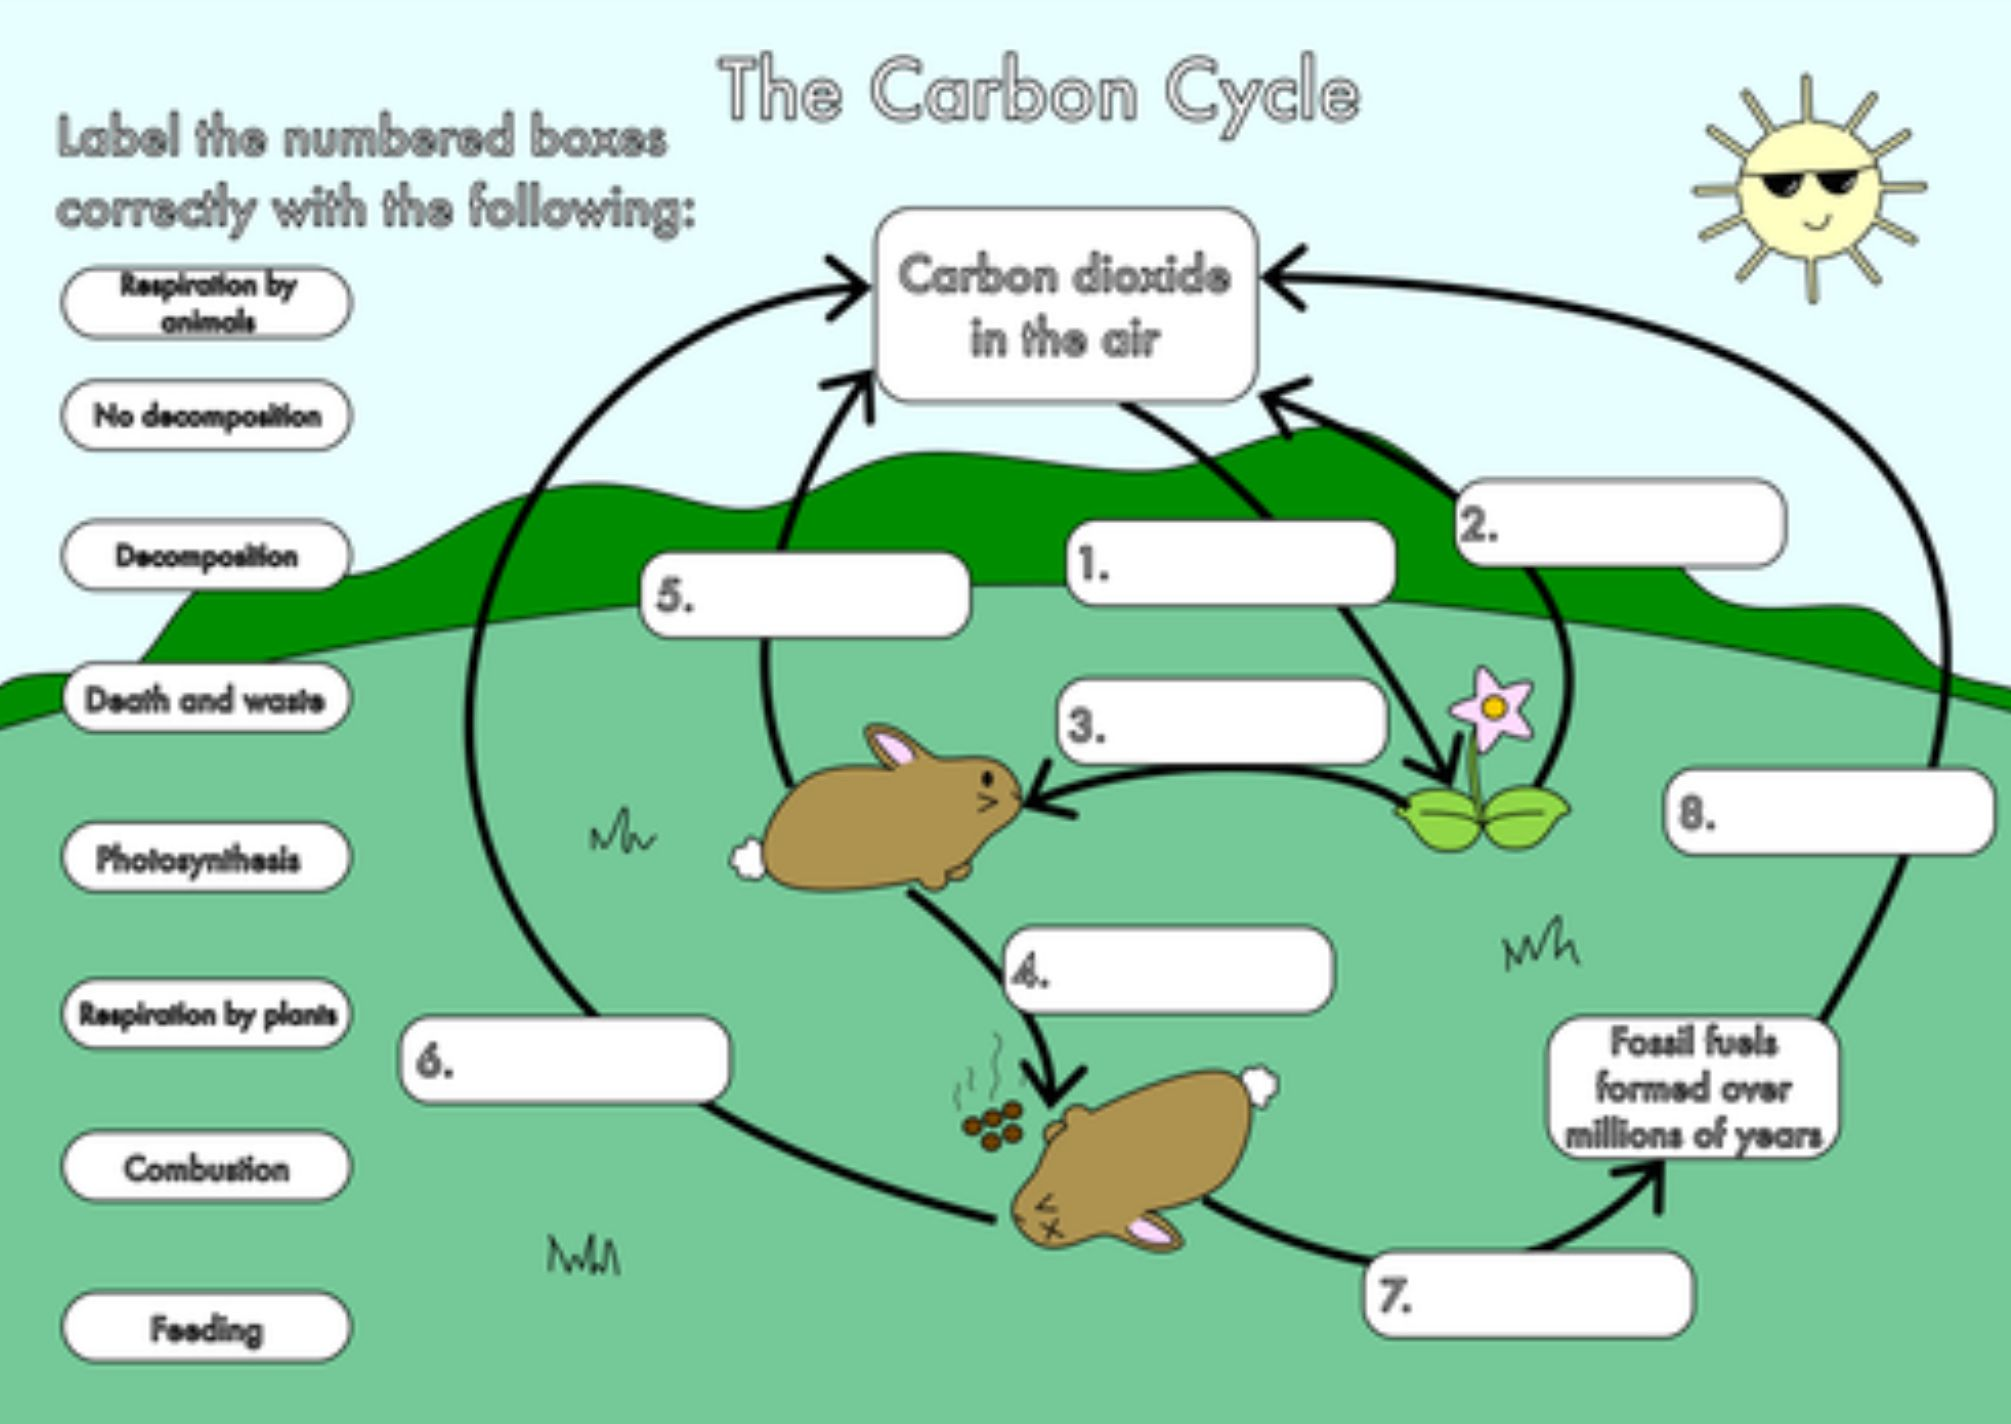 small resolution of the carbon cycle worksheet 1 thursday may 23 2019 snc1d carbon cycle diagram fill in the blank carbon cycle diagram fill in